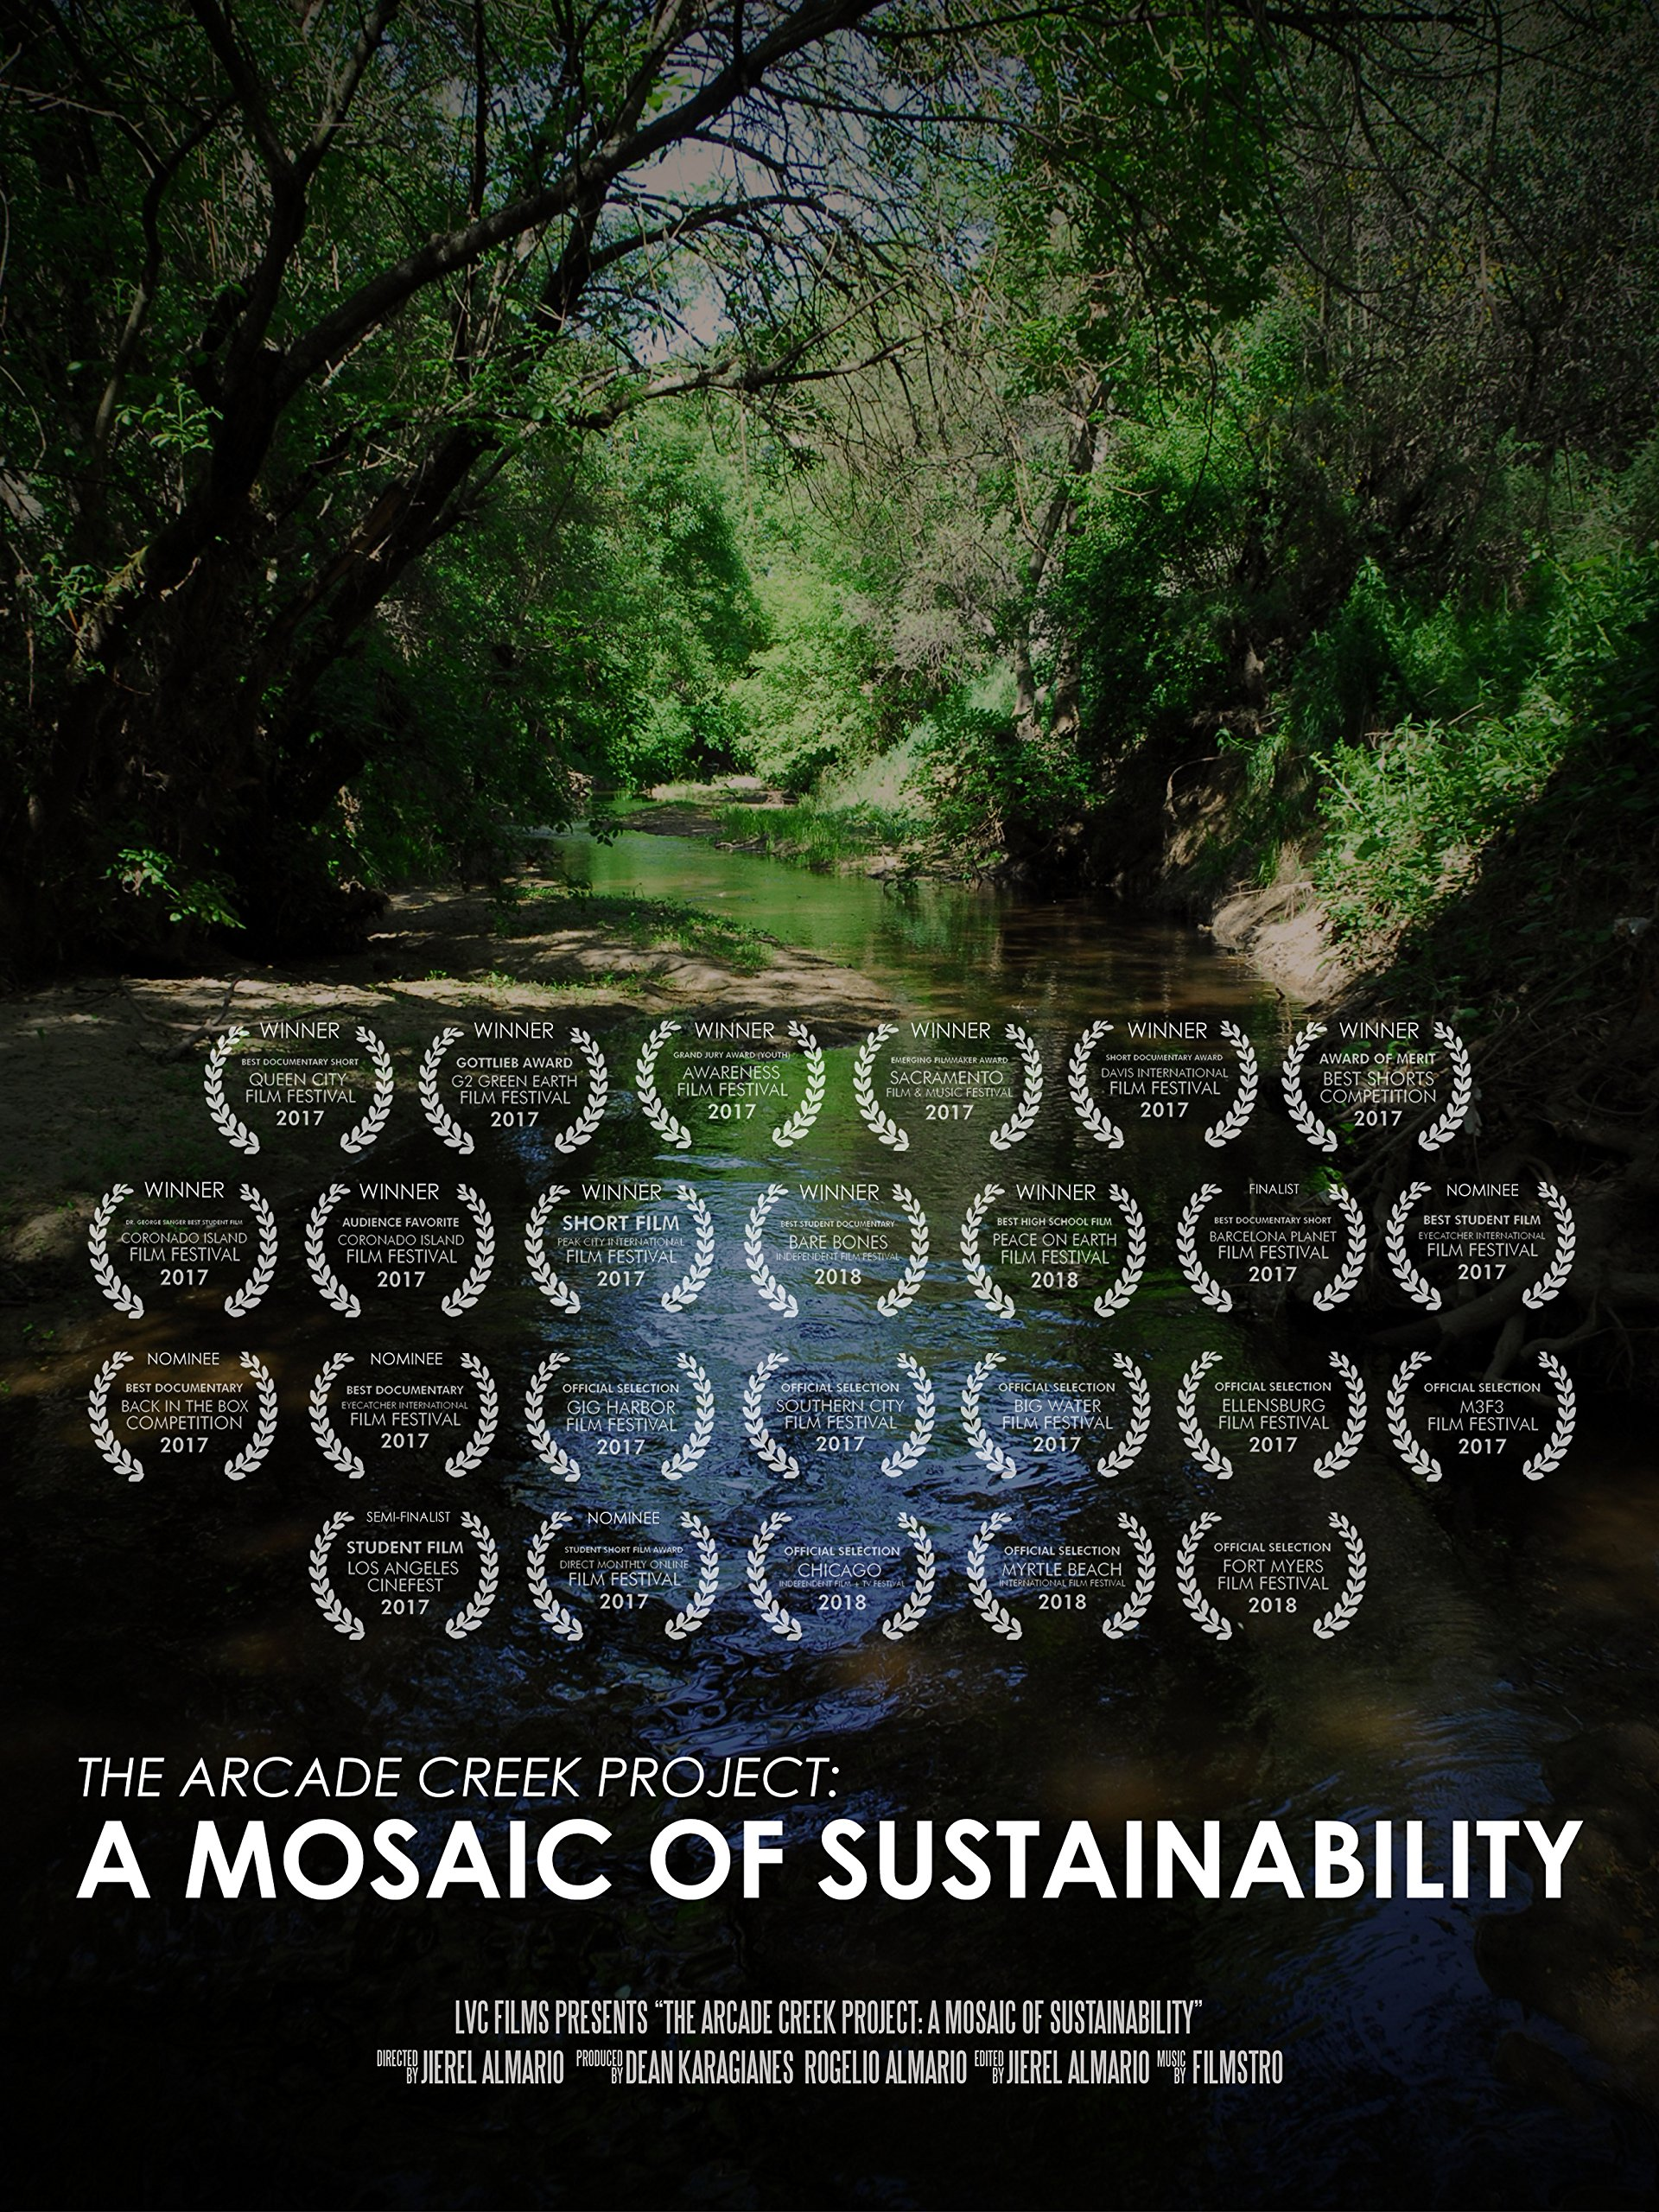 The Arcade Creek Project: A Mosaic of Sustainability on Amazon Prime Instant Video UK